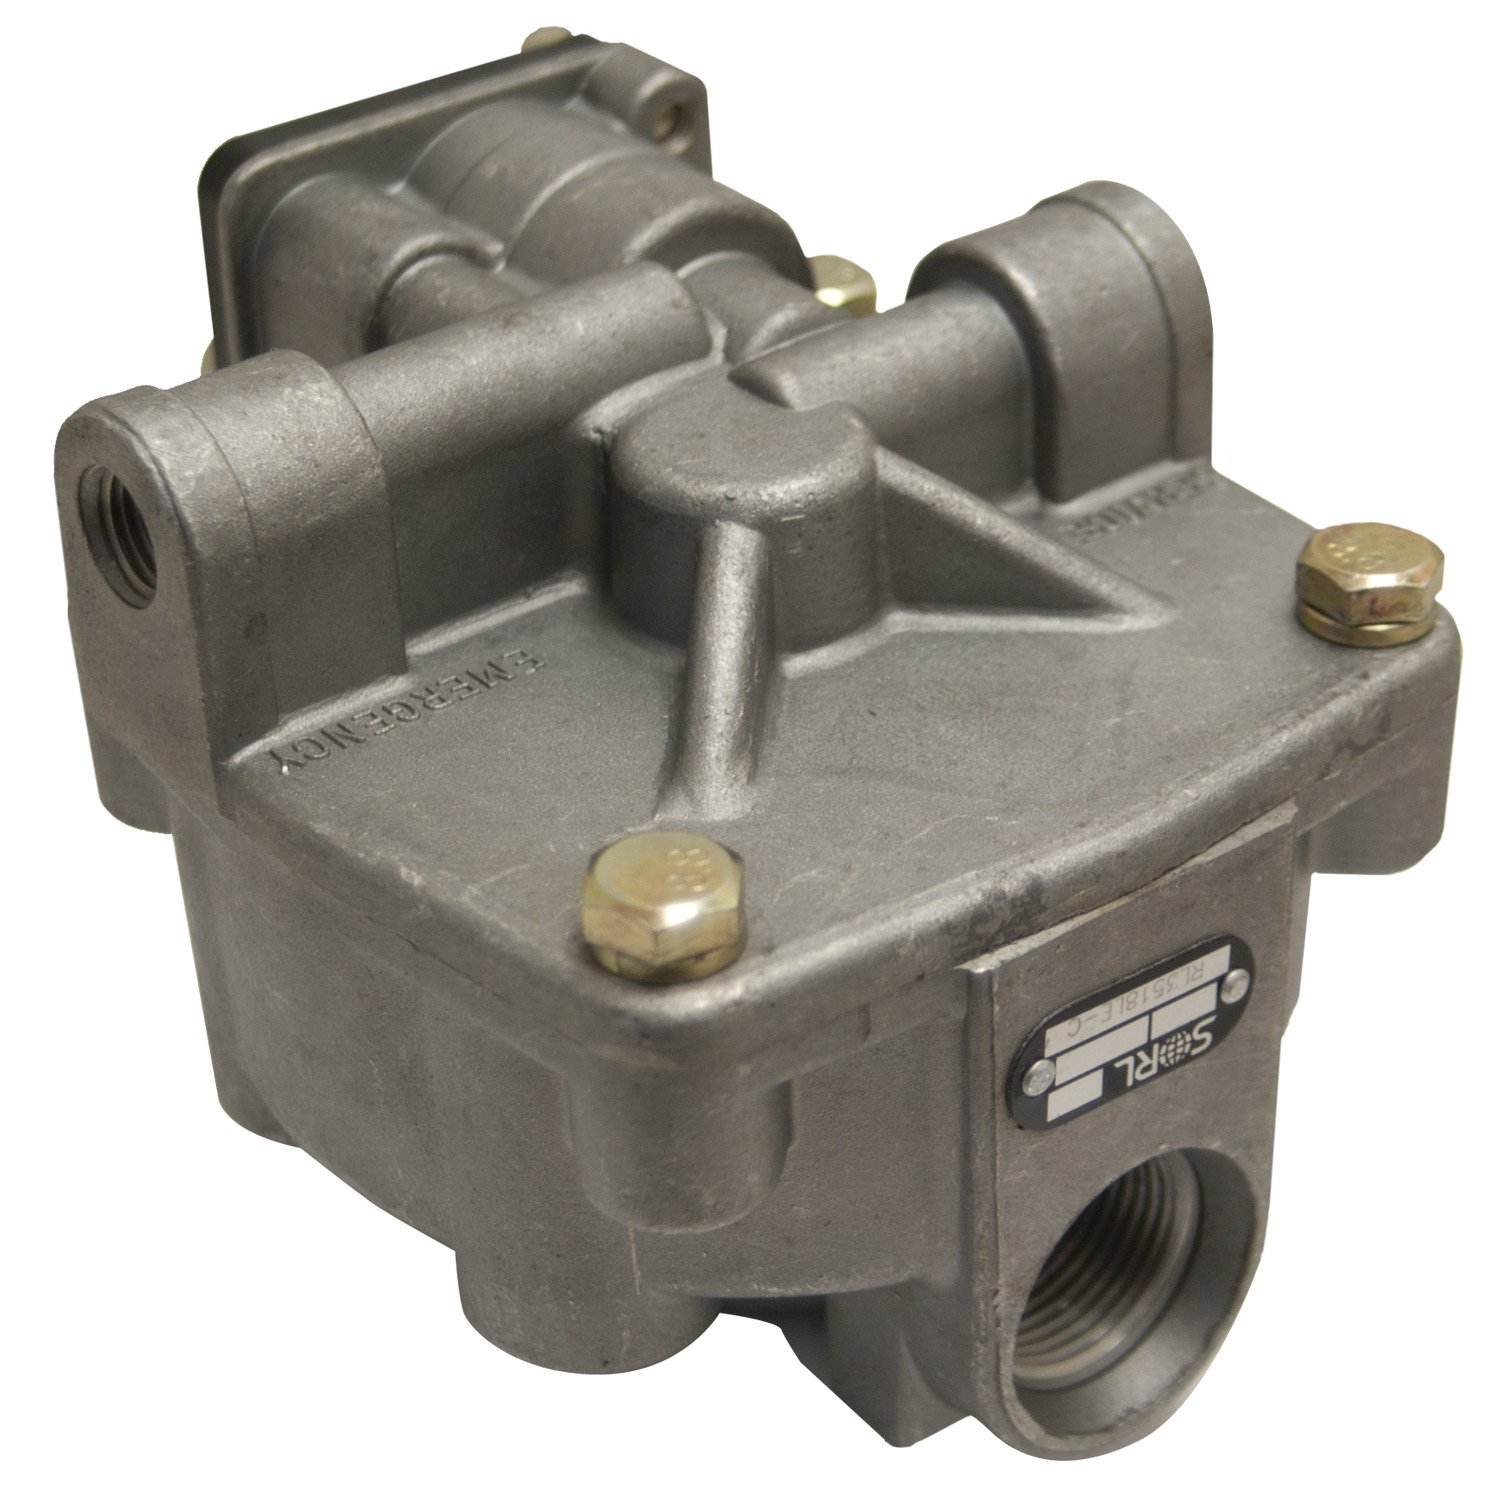 Midland Style Emergency Relay Valve KN30300 for Trucks, Trailers